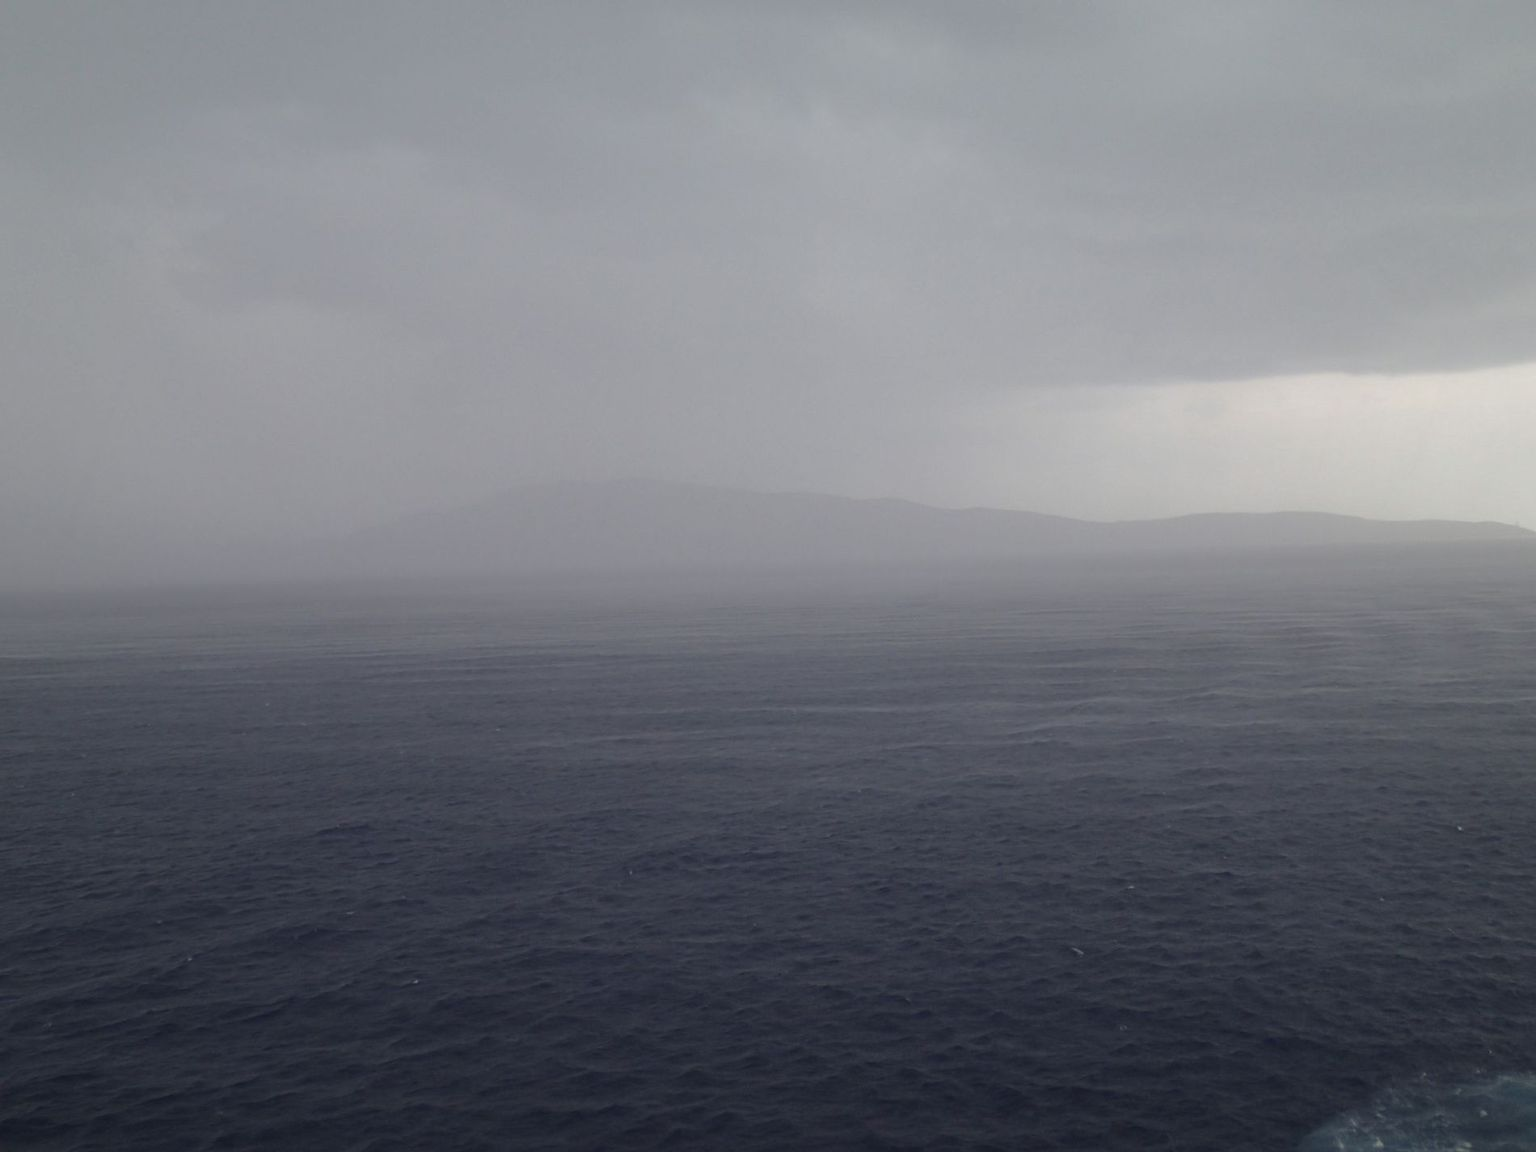 Storm over the Mediterranean Sea